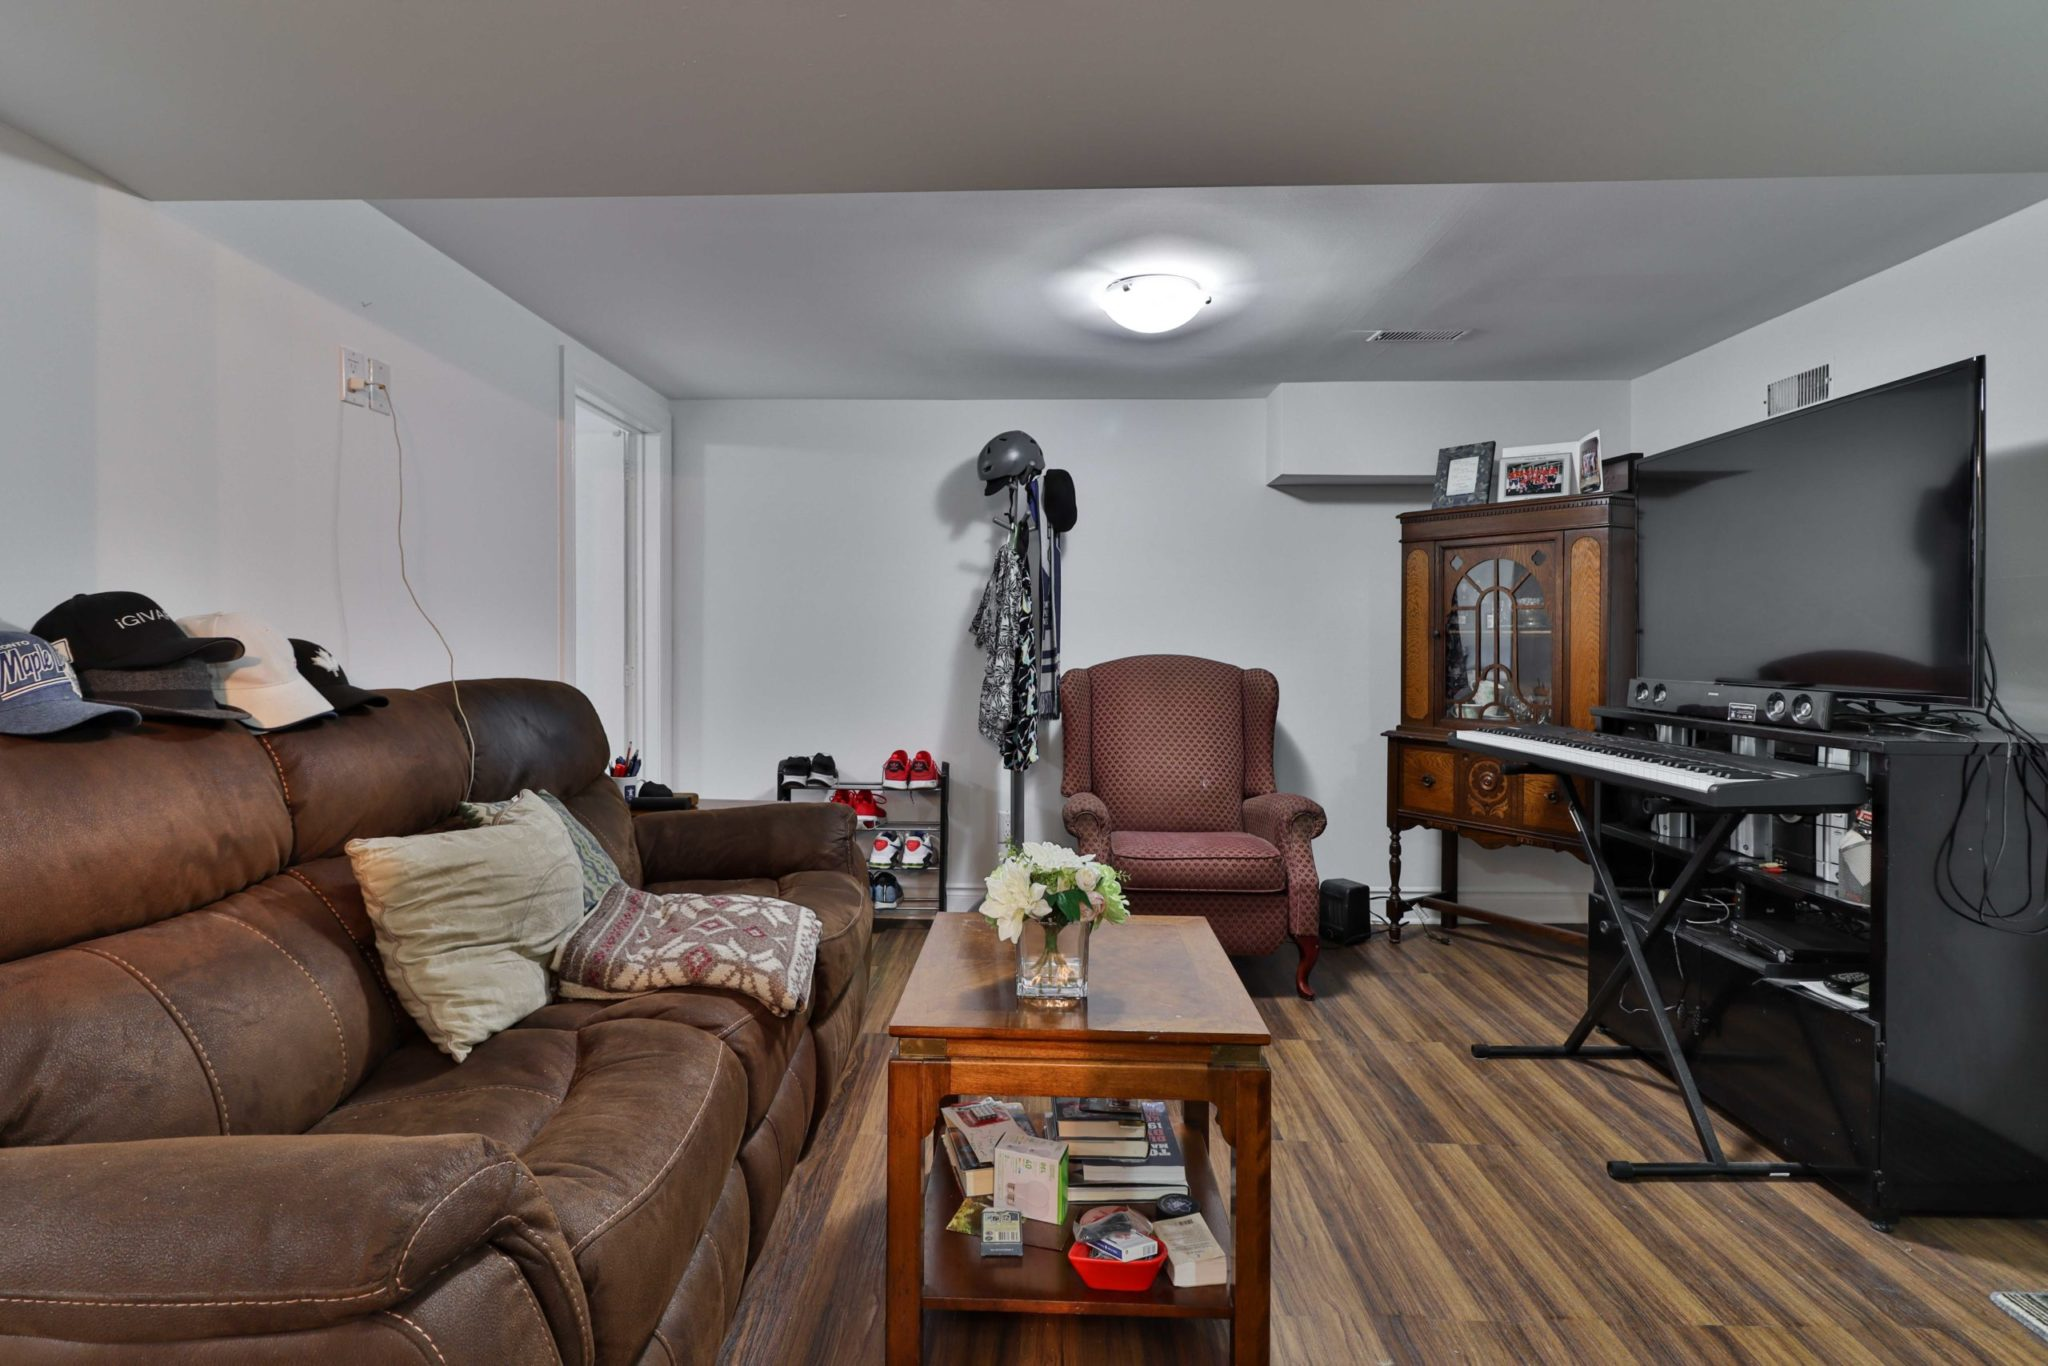 Large basement living room with big couch, TV, armchair, keyboard and other furniture.